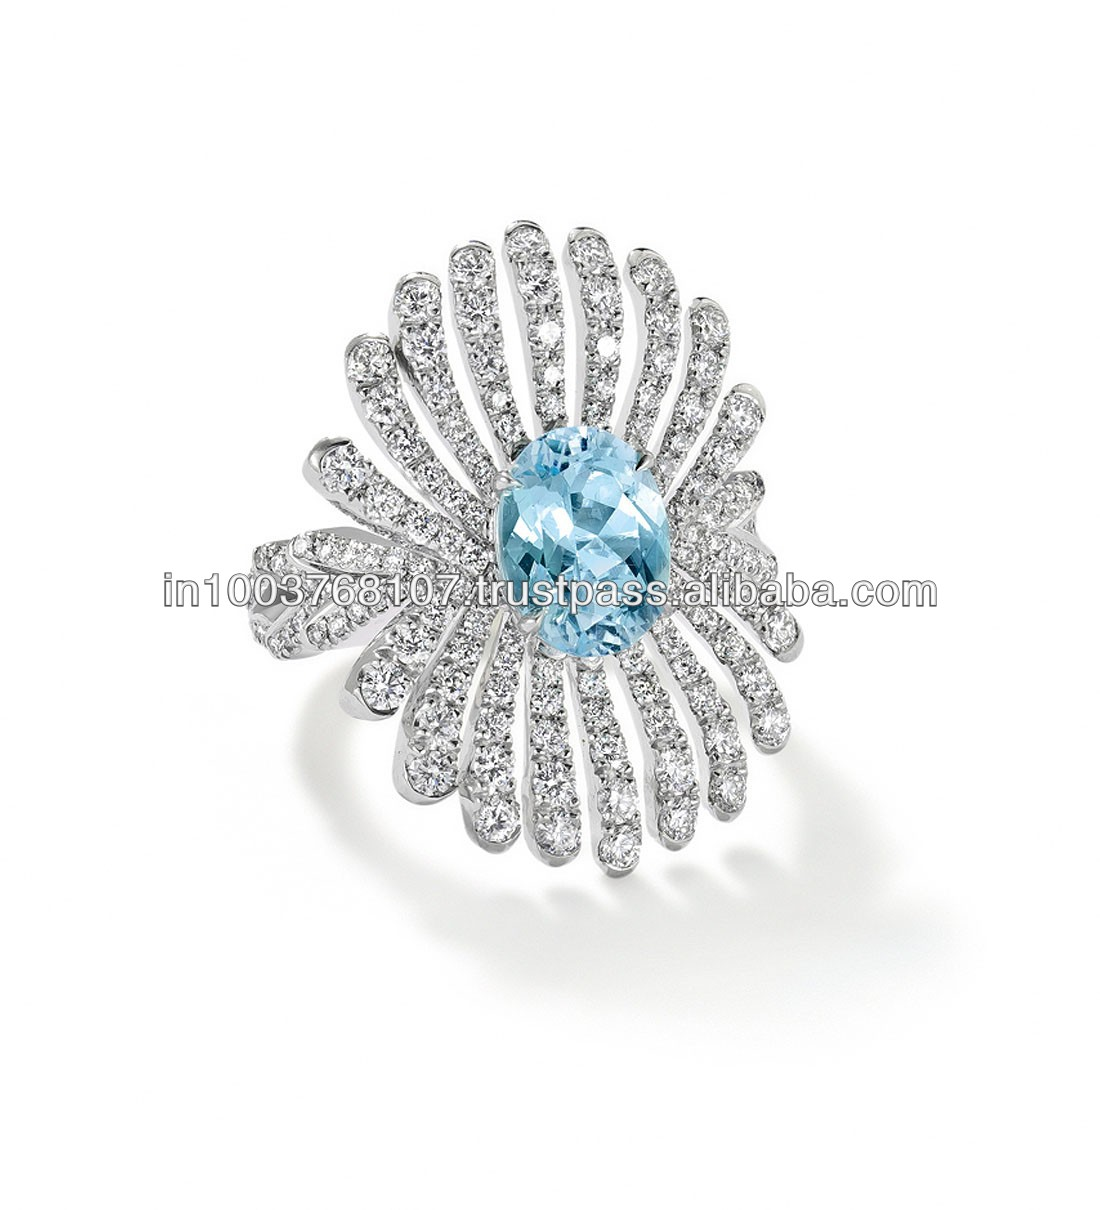 img janet ring jewelry fine diamond band deleuse products designer couture